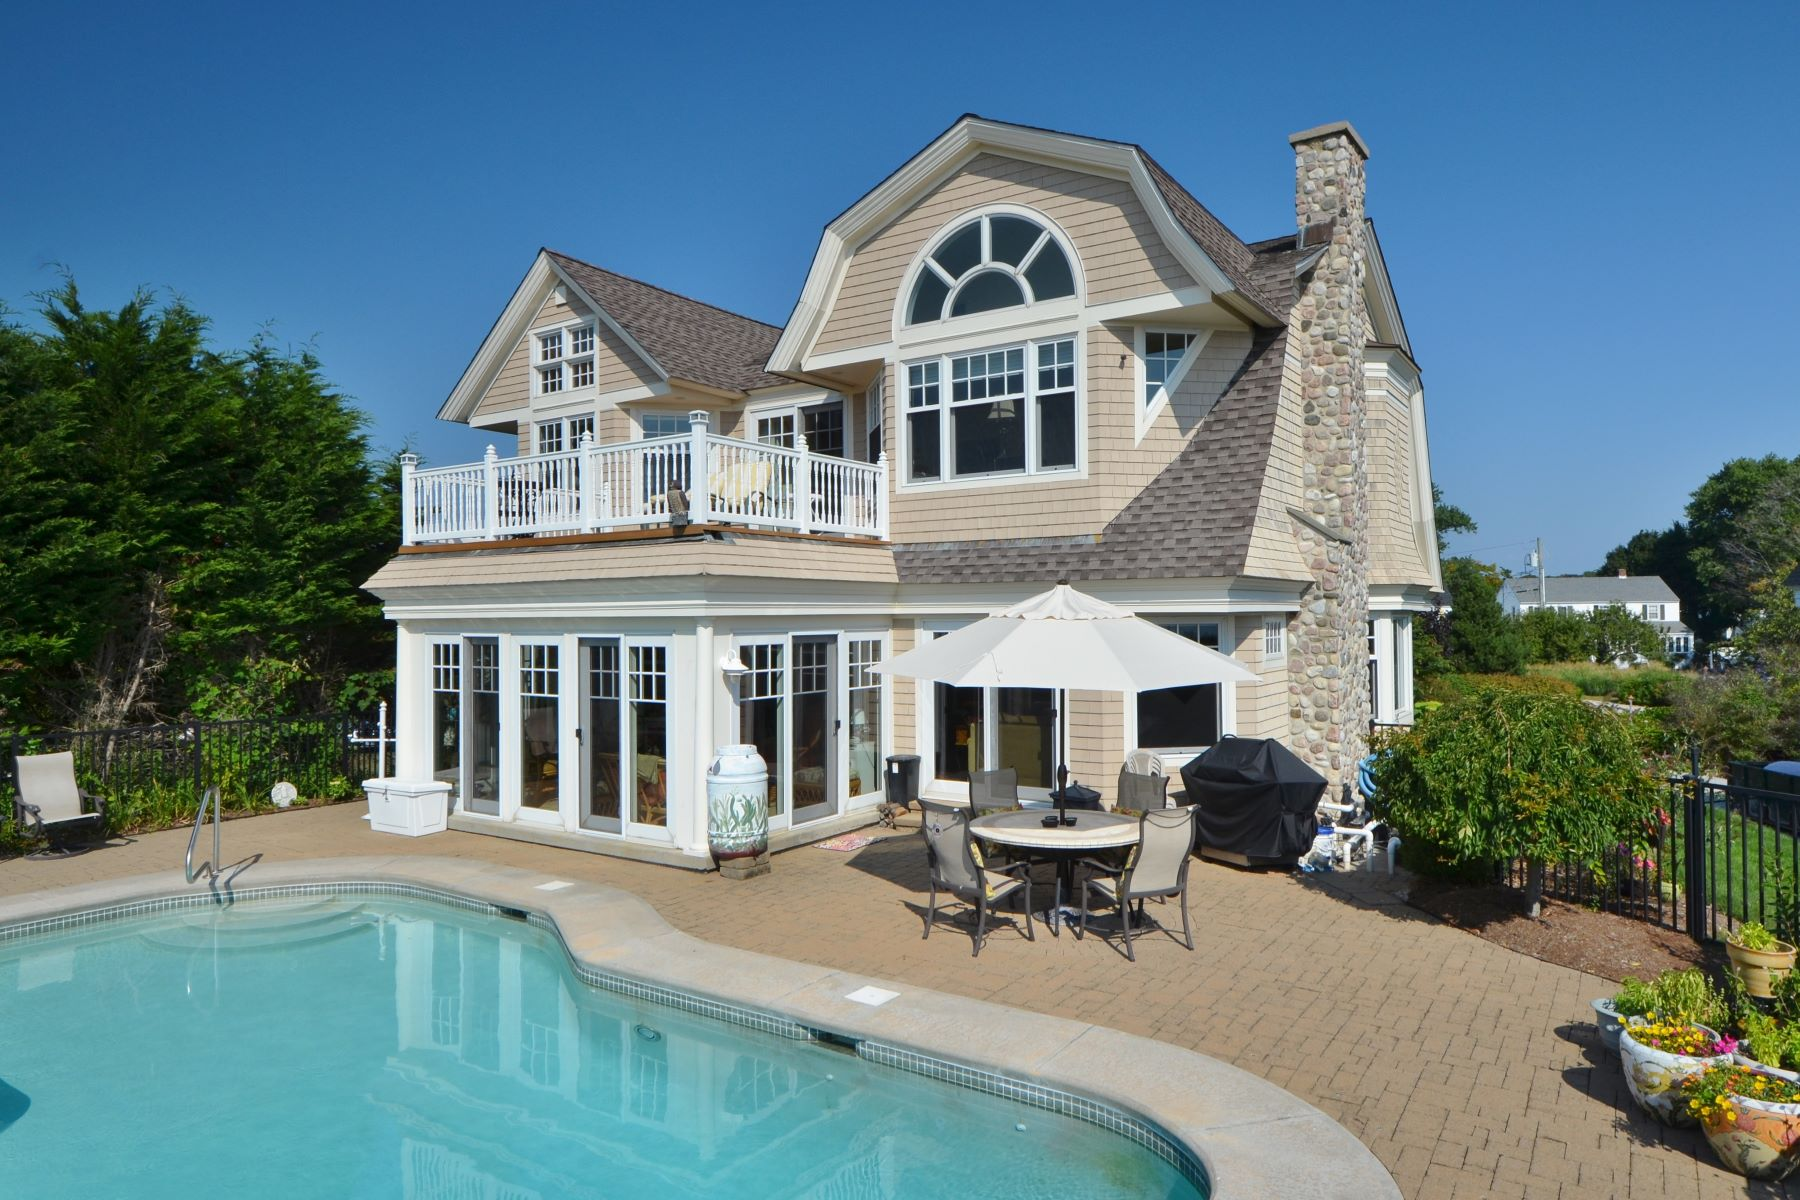 Vivienda unifamiliar por un Venta en Luxuriate in This Coastal Masterpiece 10 Billow Rd, Old Saybrook, Connecticut, 06475 Estados Unidos